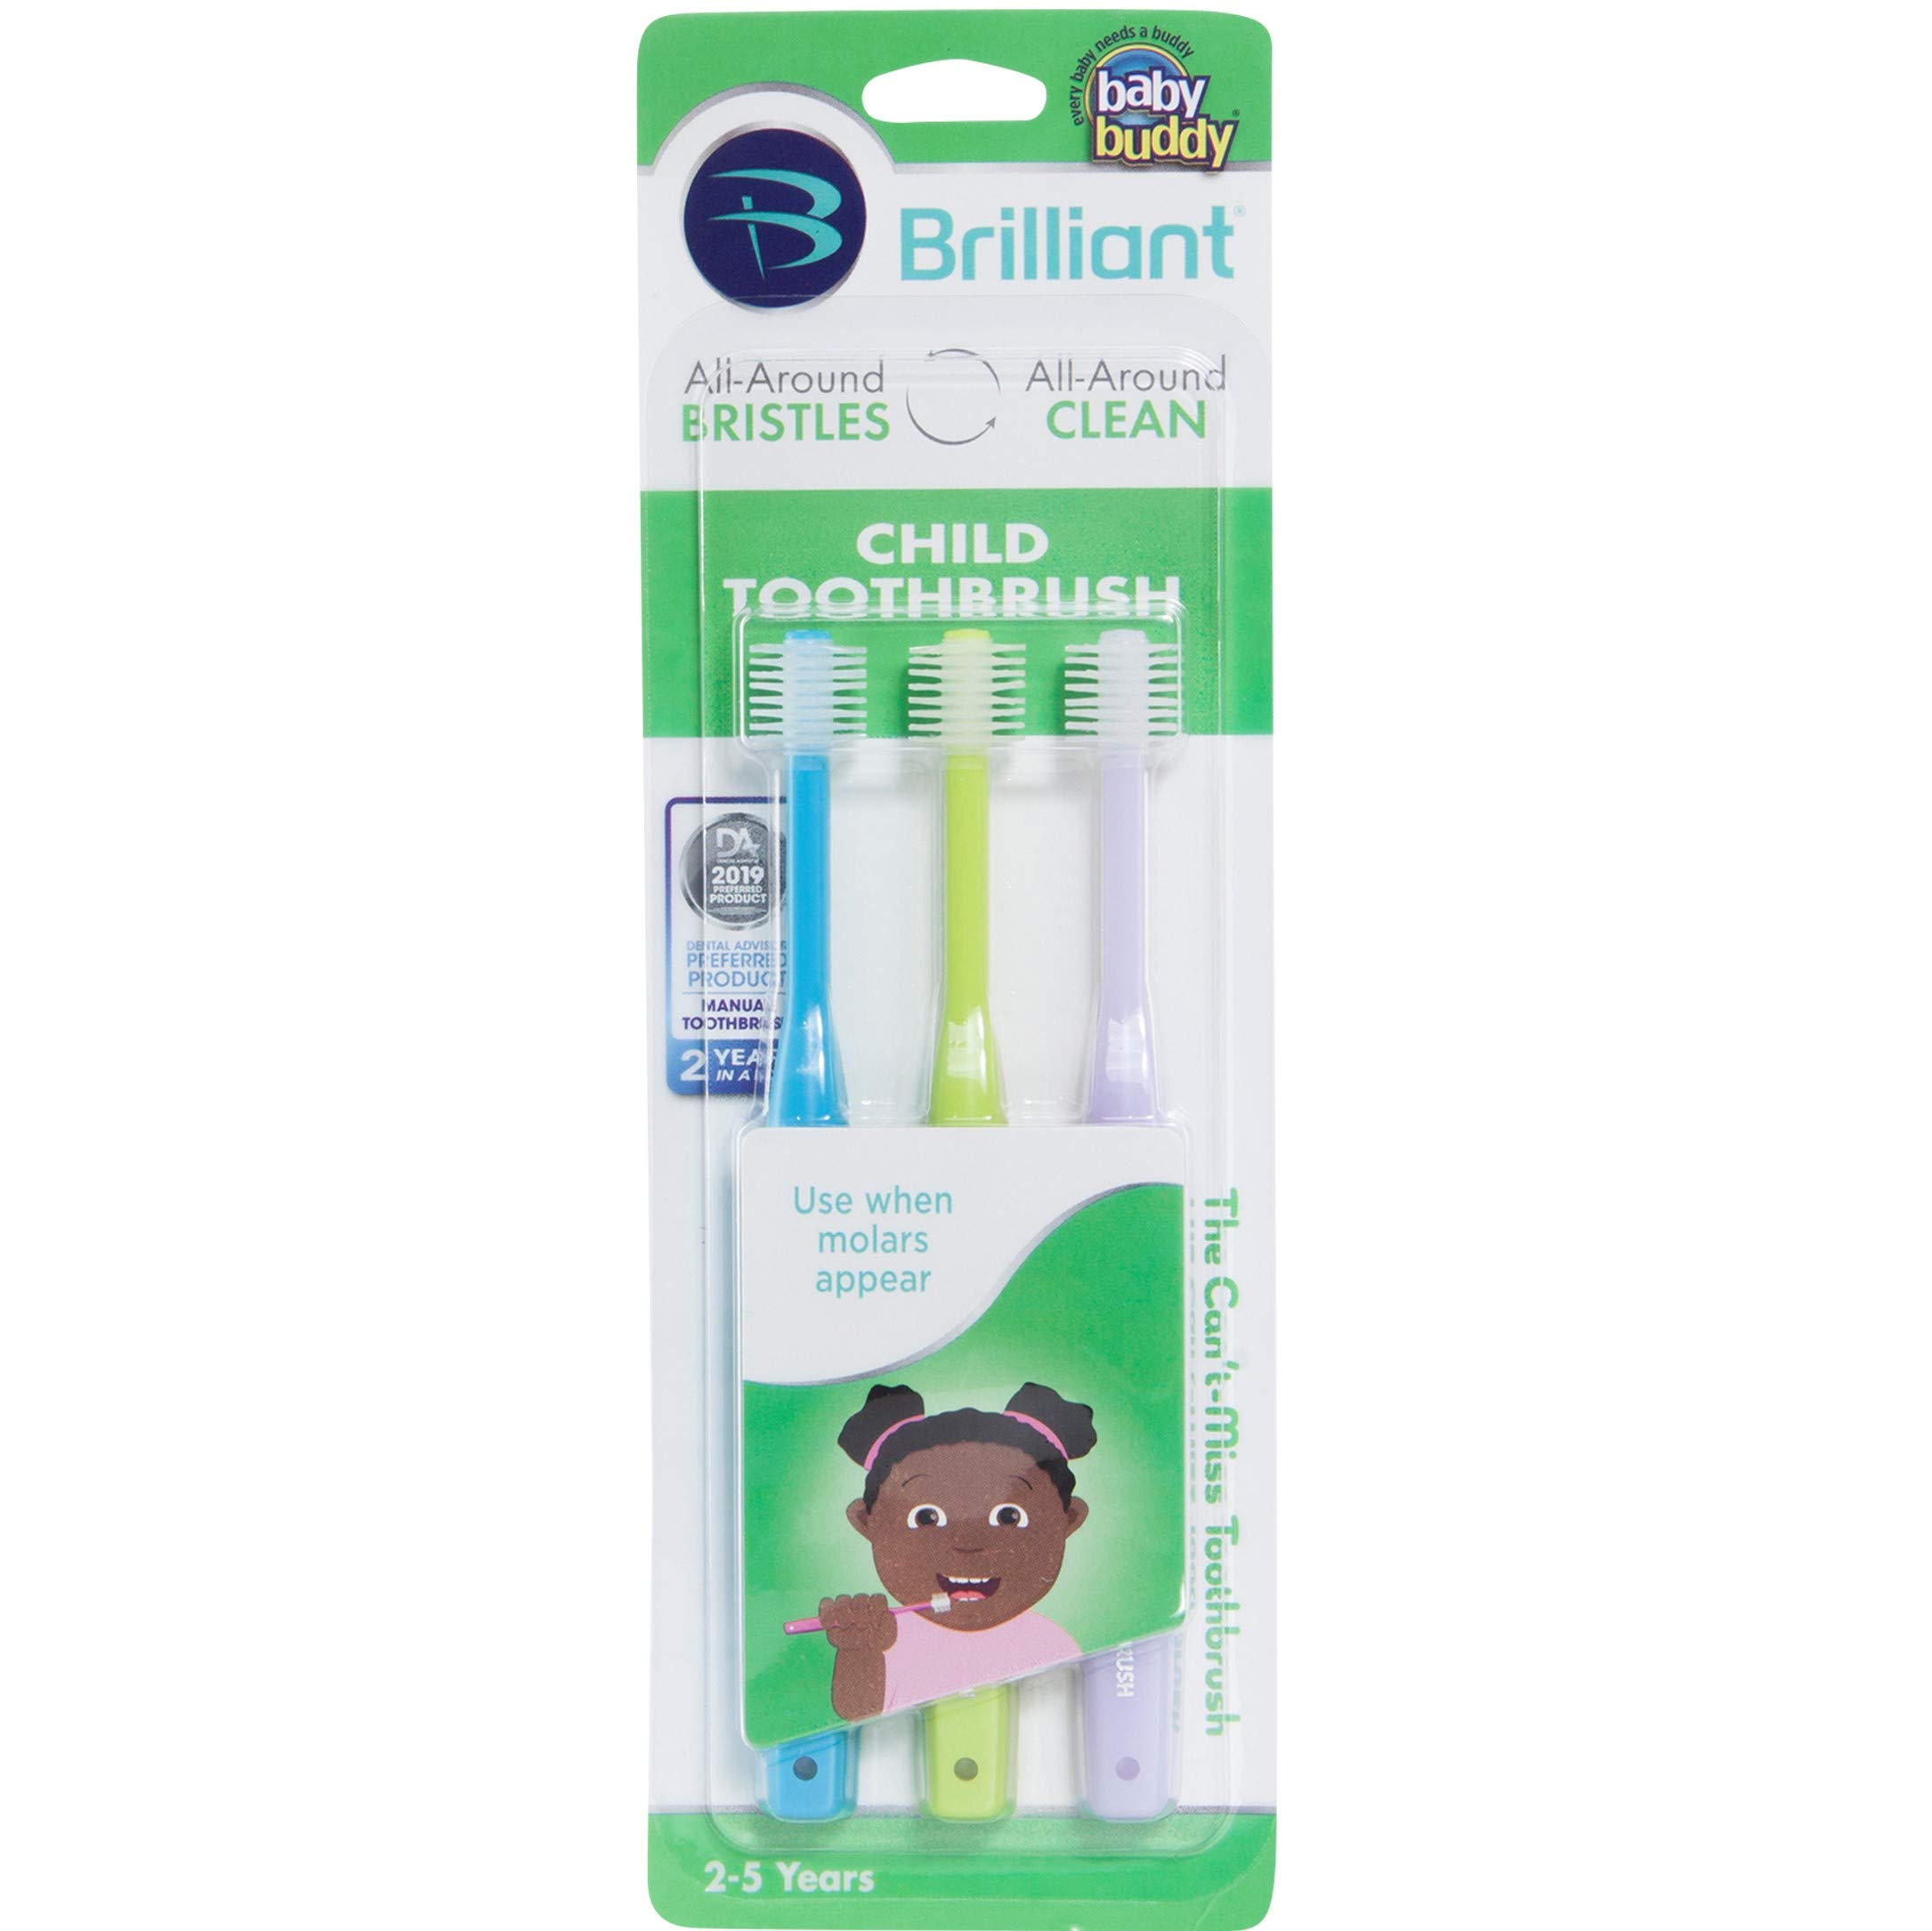 Brilliant Child Toothbrush by Baby Buddy - Ages 2-5 Years, When Molars Appear, BPA Free Super-Fine Micro Bristles Clean All-Around Mouth, Kids Love Them, 3 Count, Sky Blue-Lime-Lilac